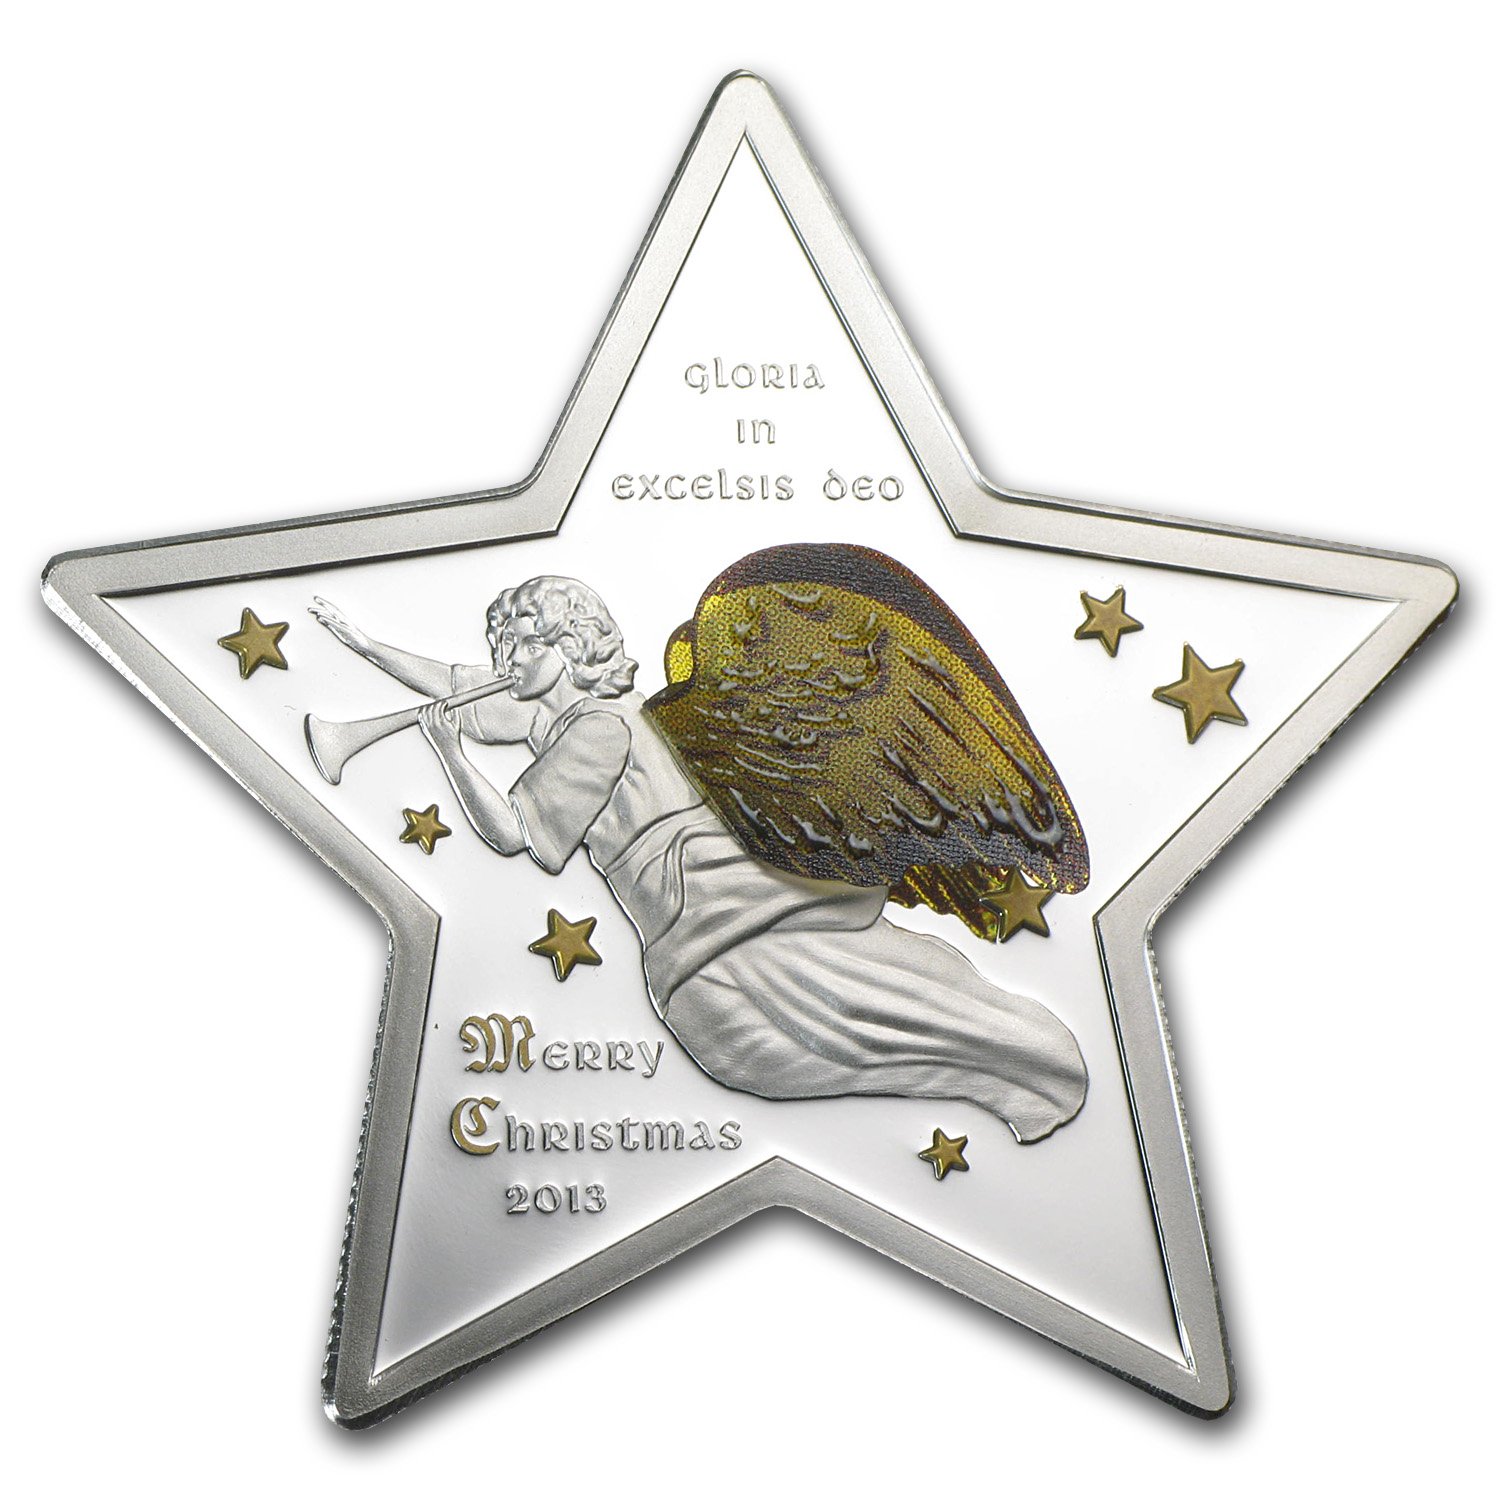 2013 Cook Islands Merry Christmas Silver Star Gloria Excelsis Deo